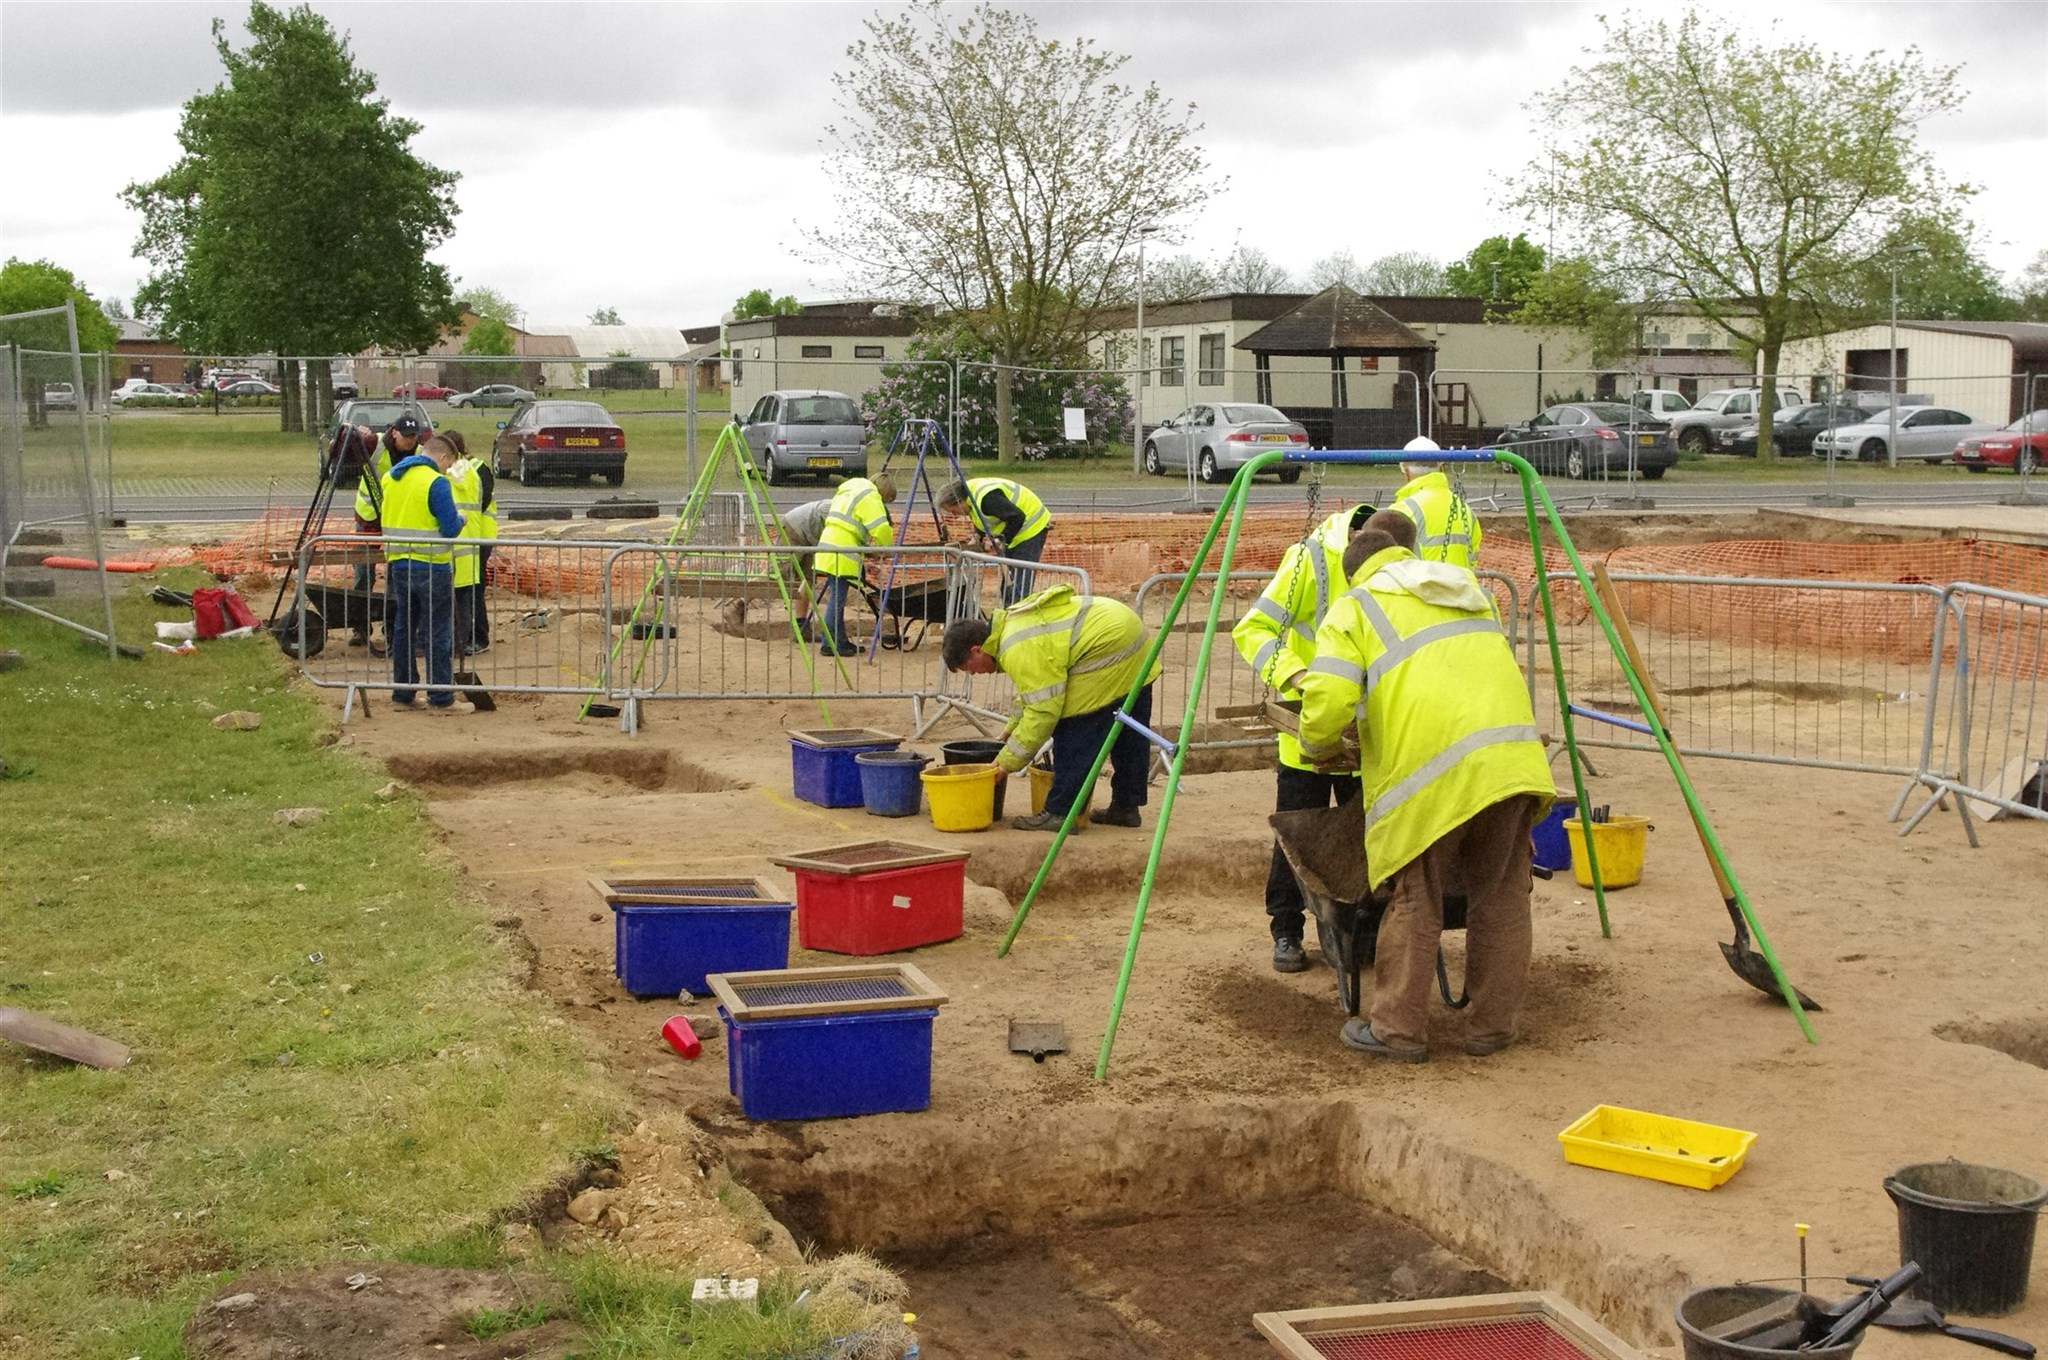 Volunteers and staff working on the RAF Lakenheath community excavation